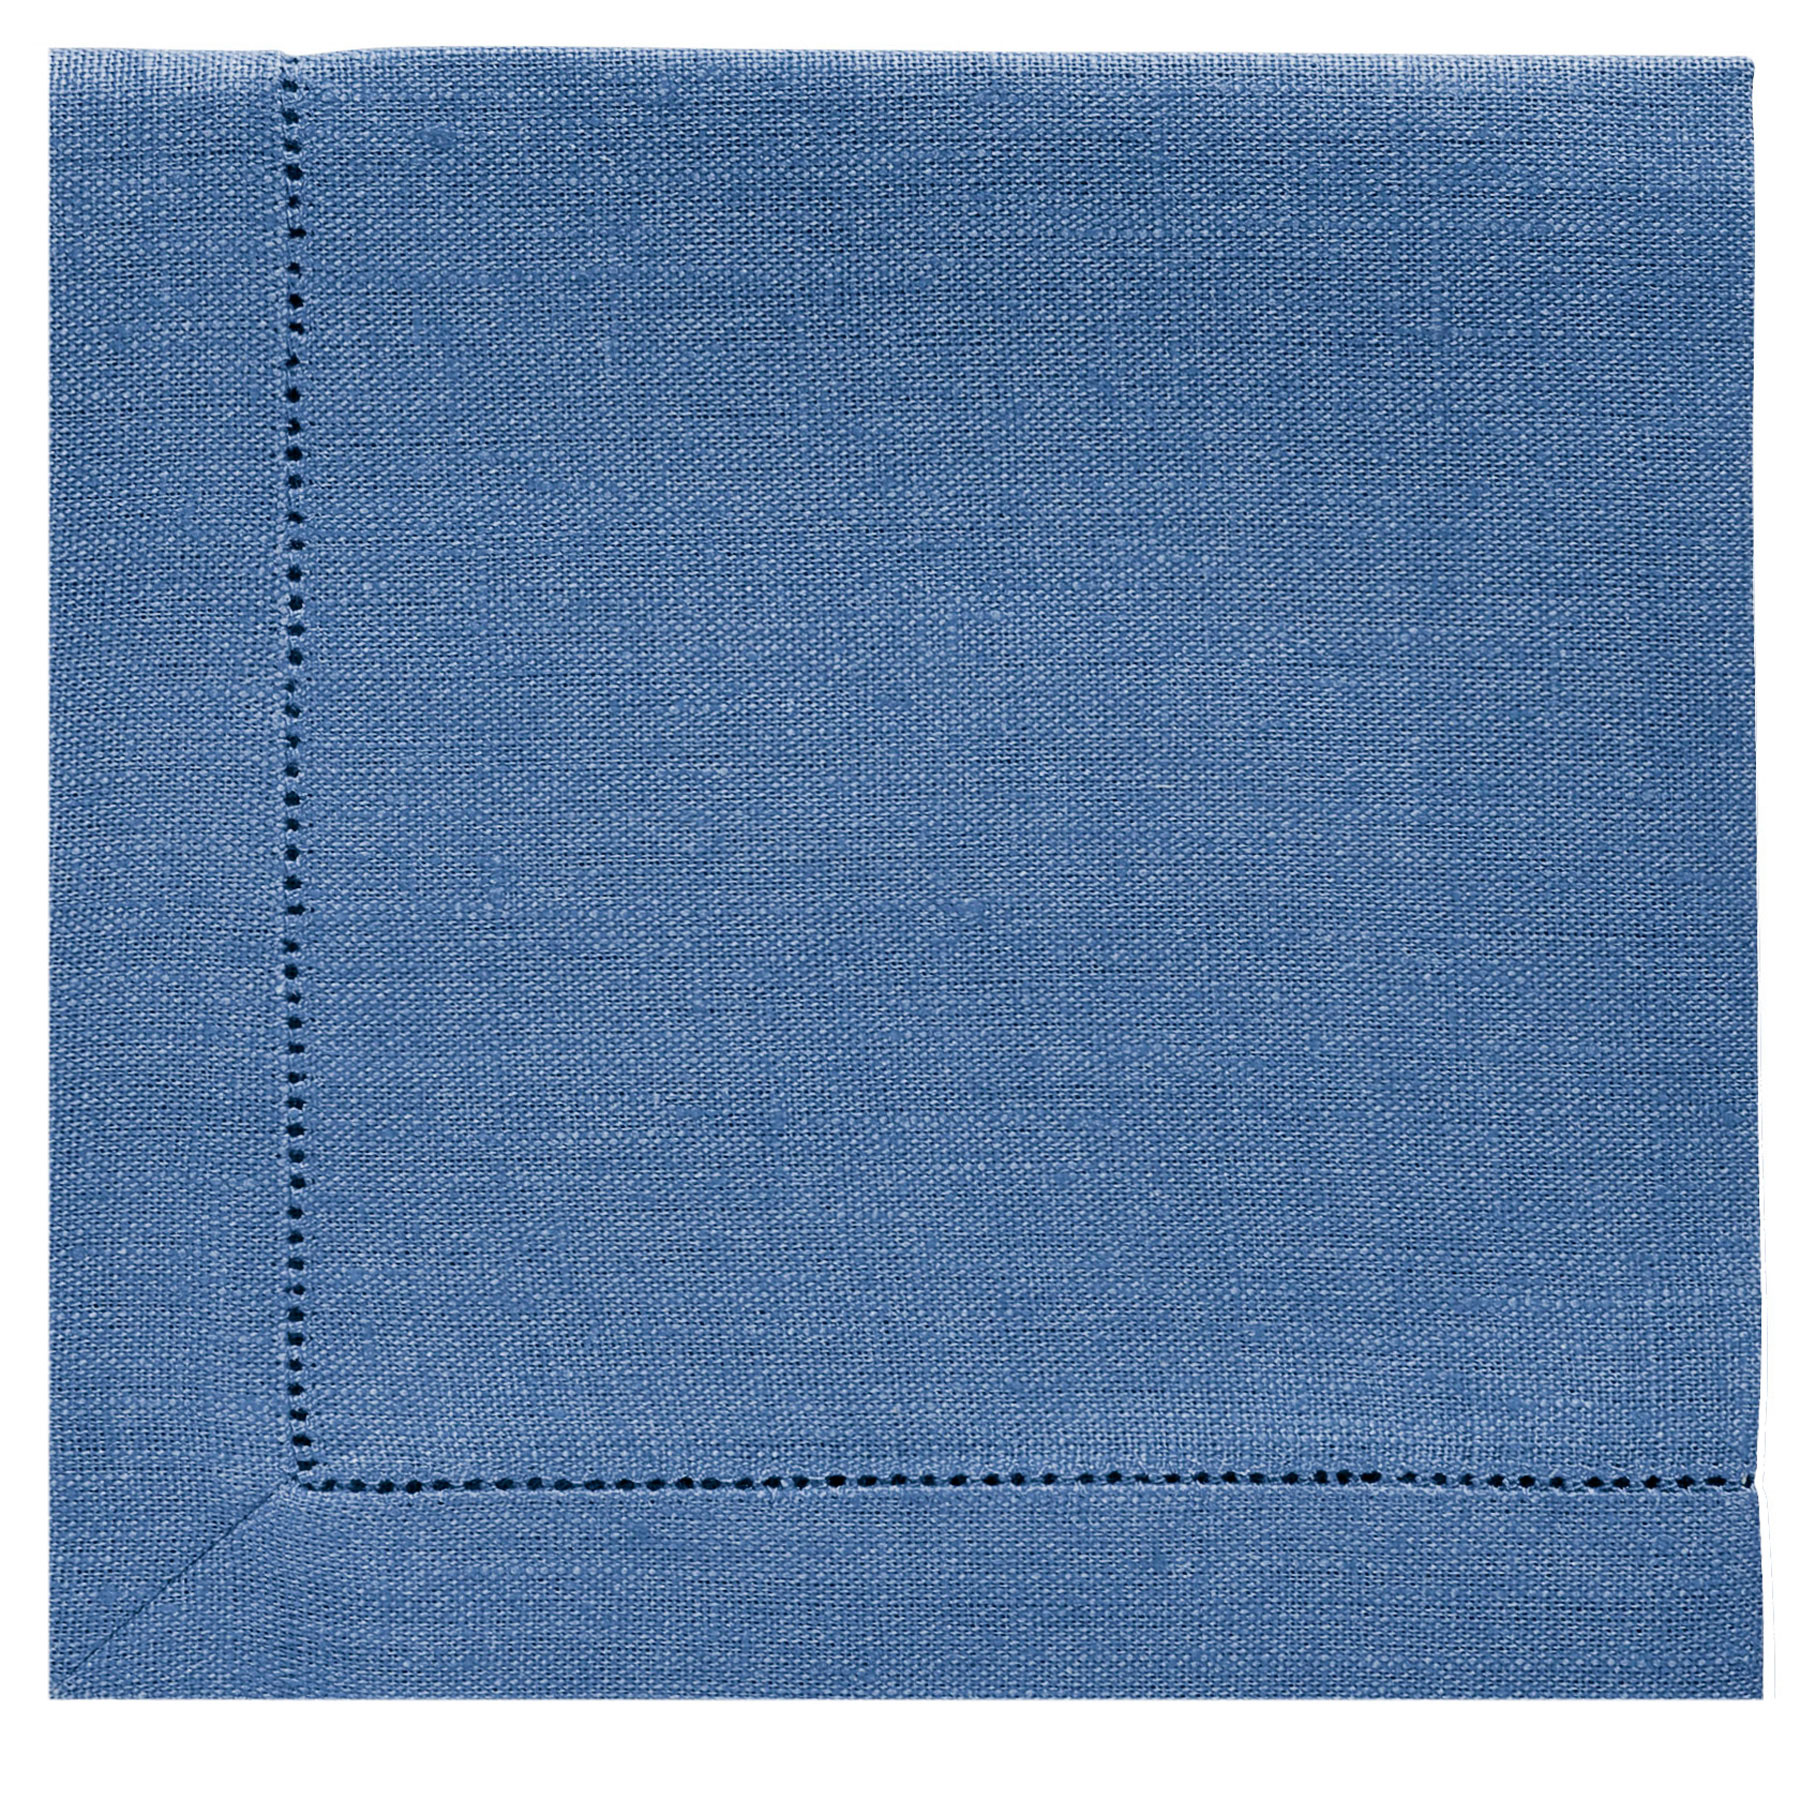 NAPKIN <br />denim blue